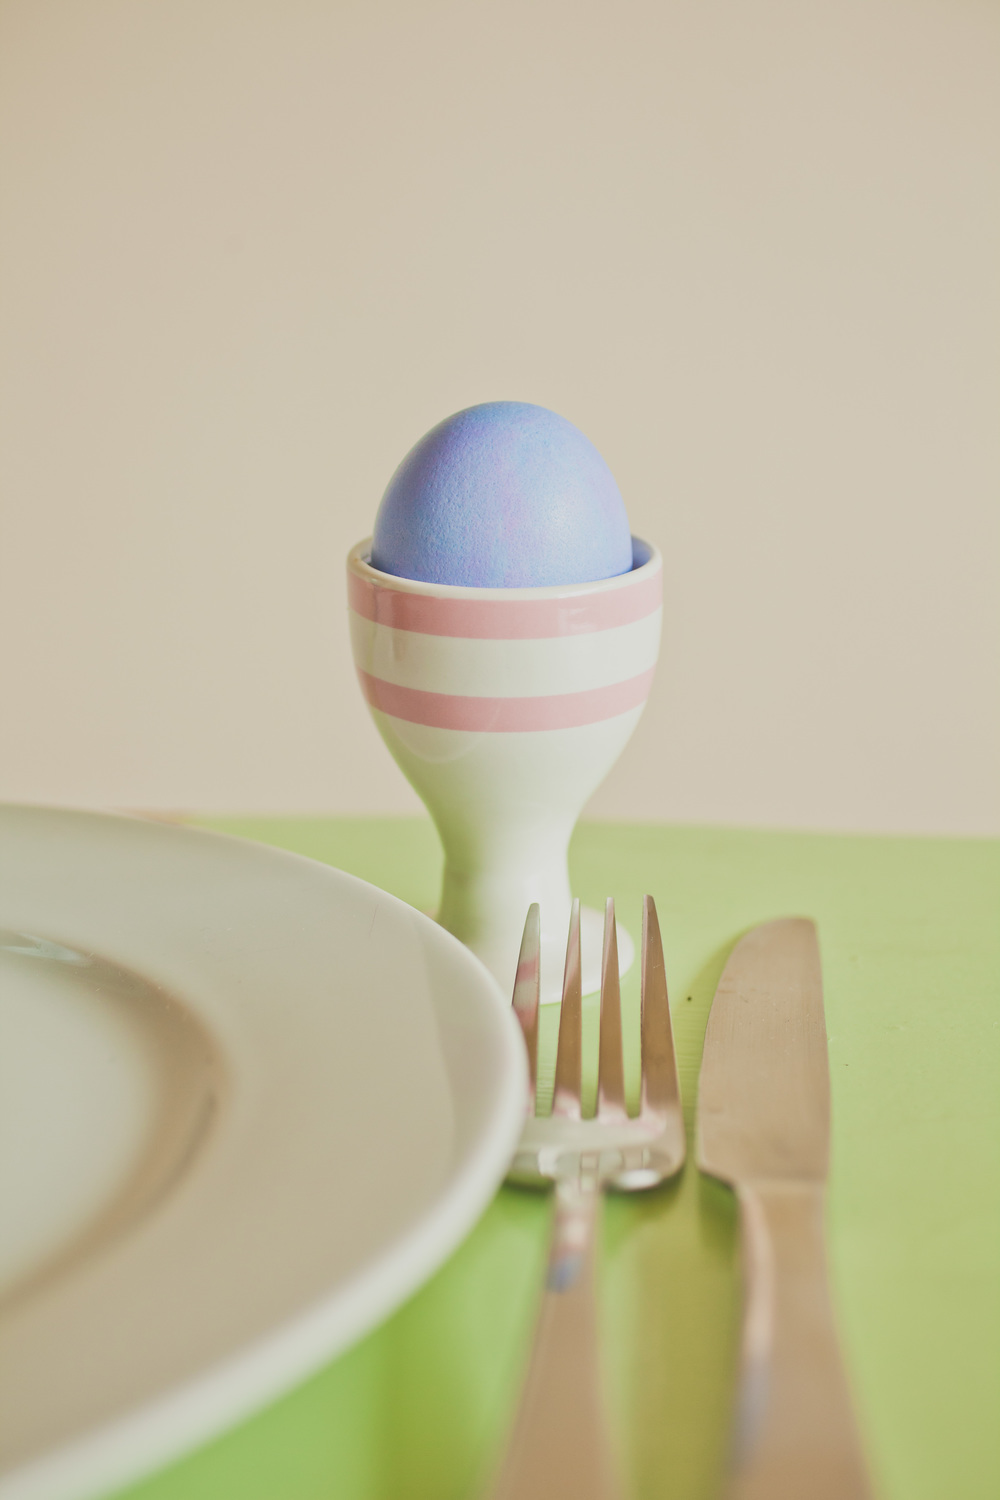 Jonathan_Kuhn_Photography_Easter-9505.JPG